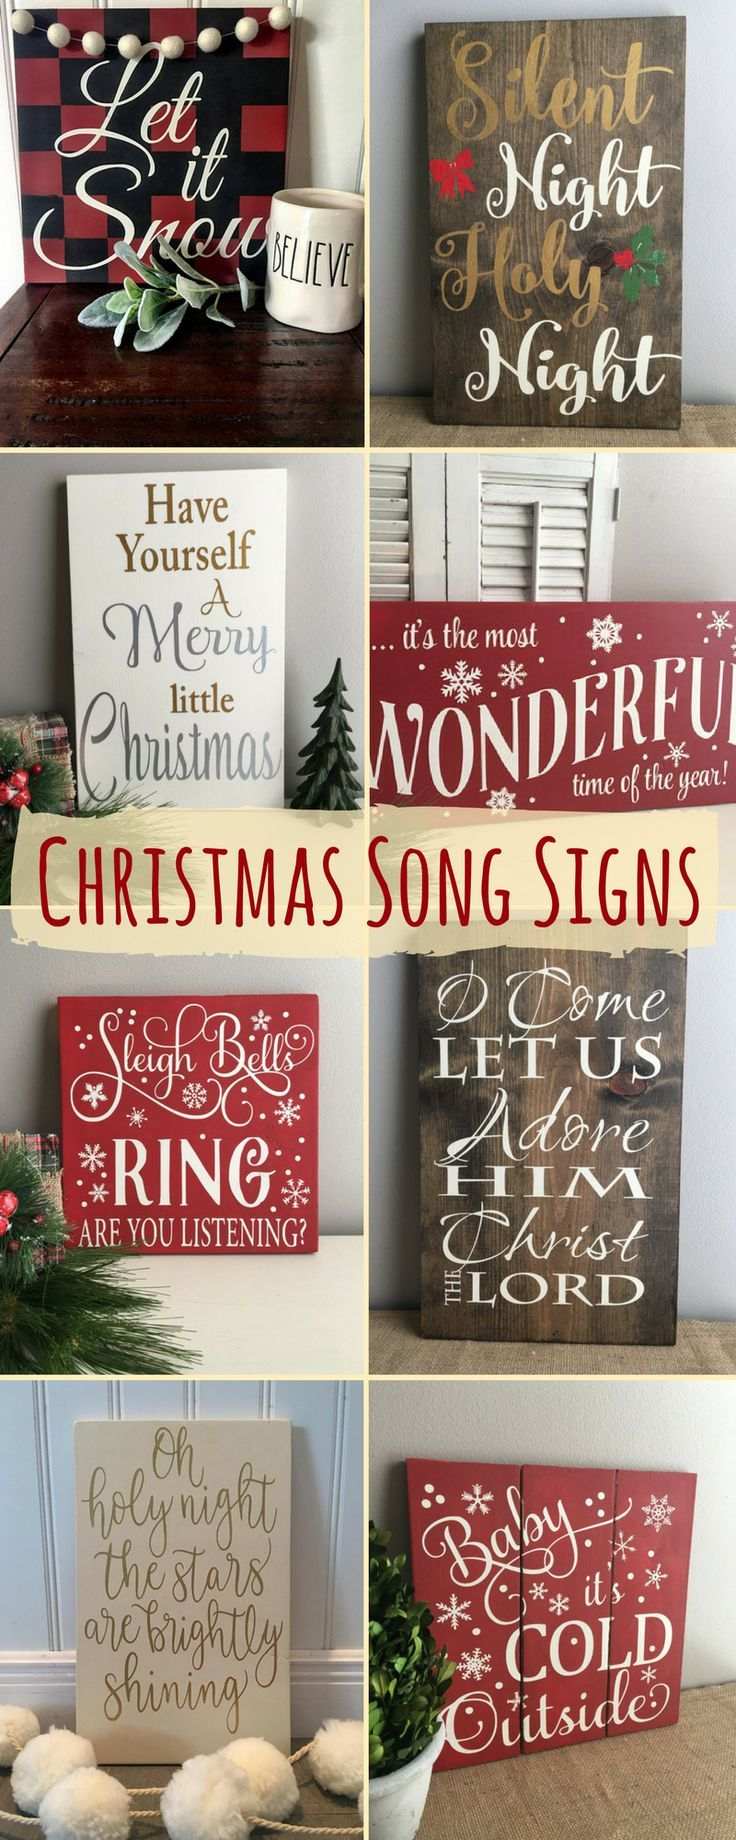 Christmas songs signs